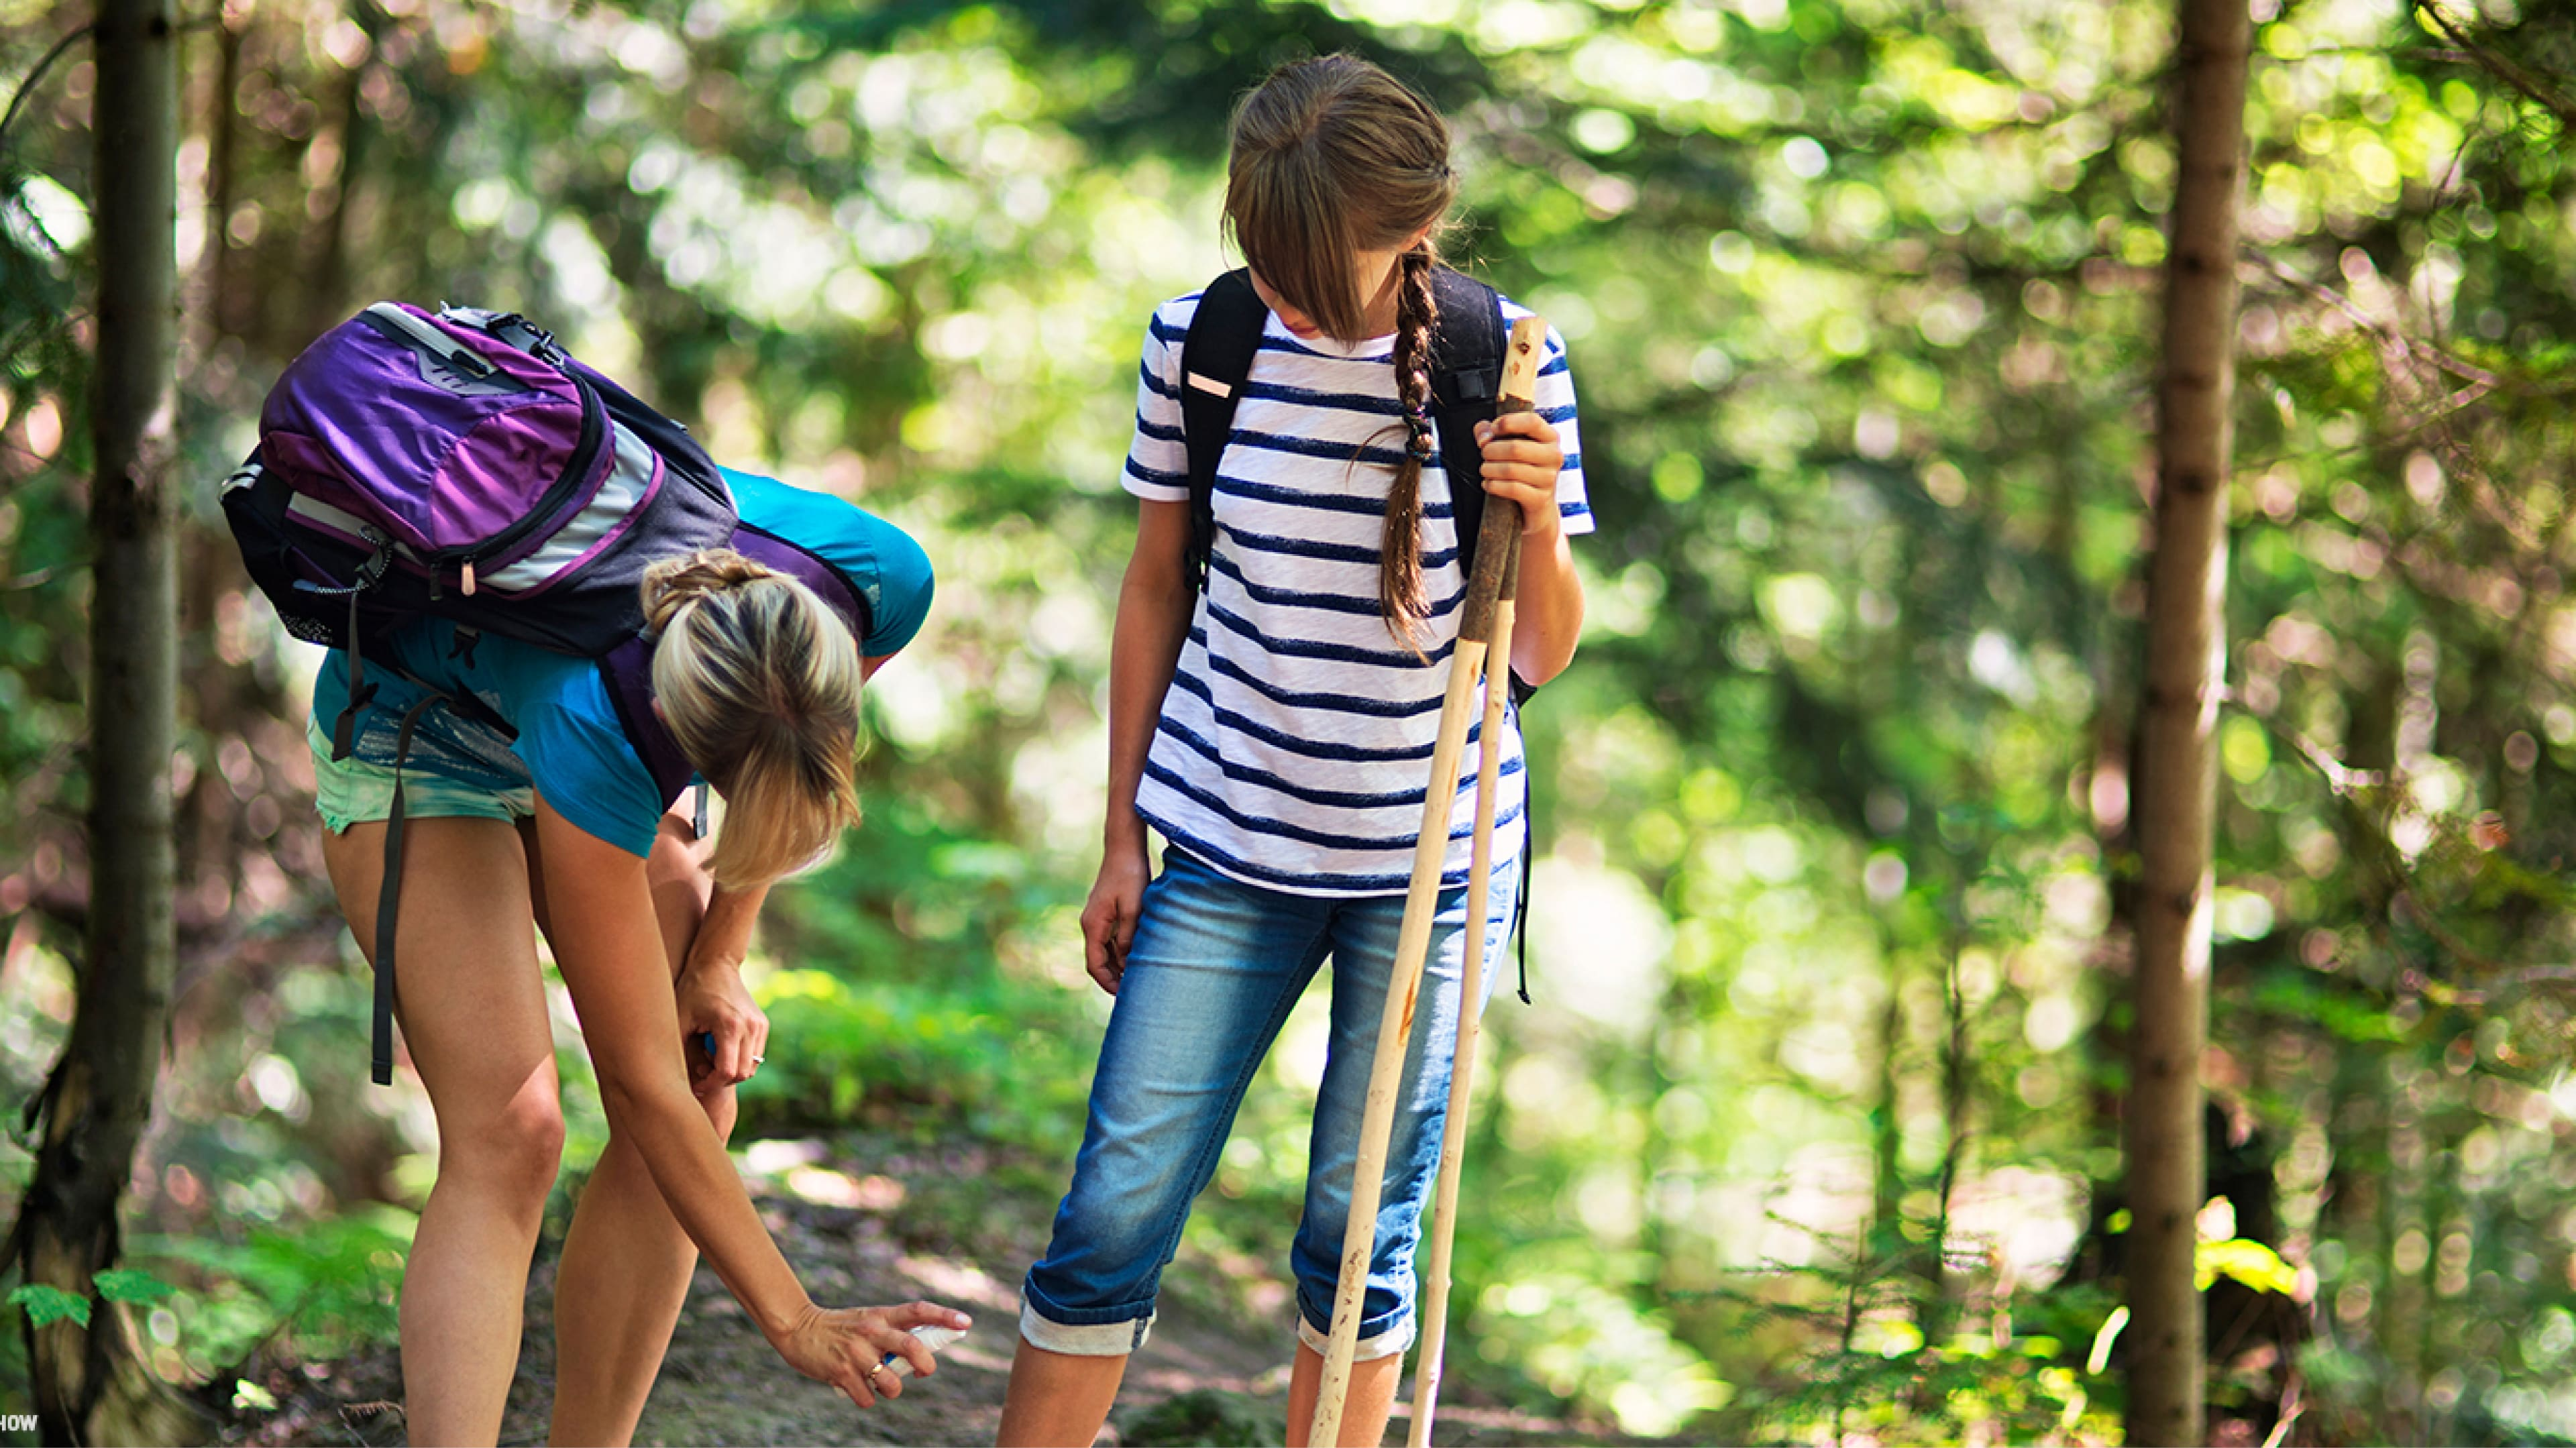 A woman applied insect repellent to her daughter as they prepare to hike through the woods.